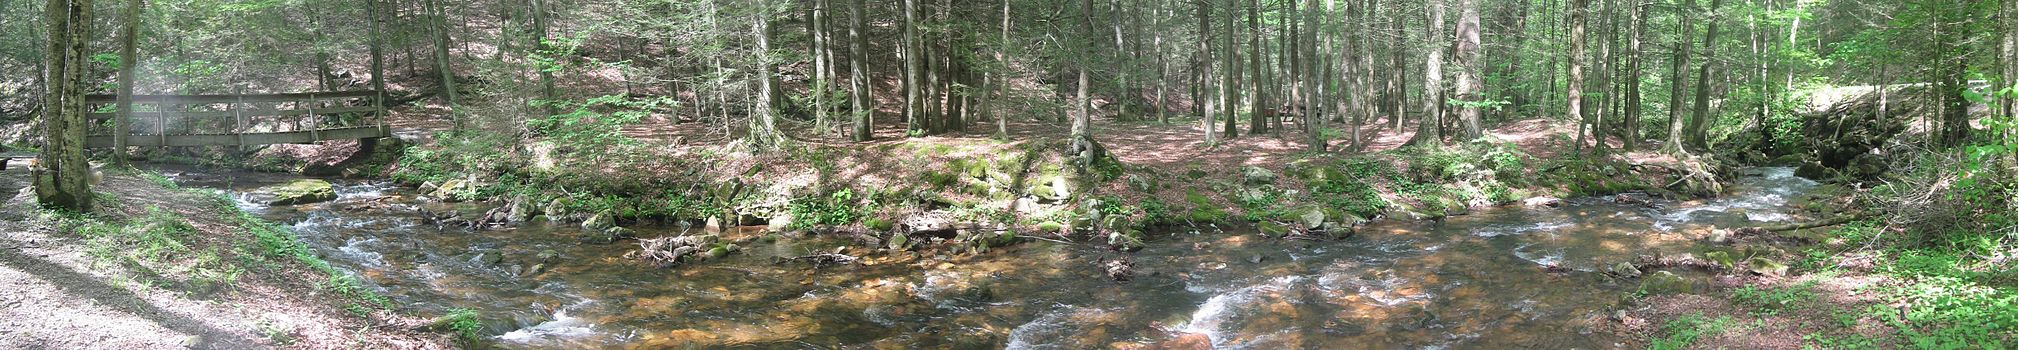 Panoramic view of swift run in the high rock picnic area of snyder